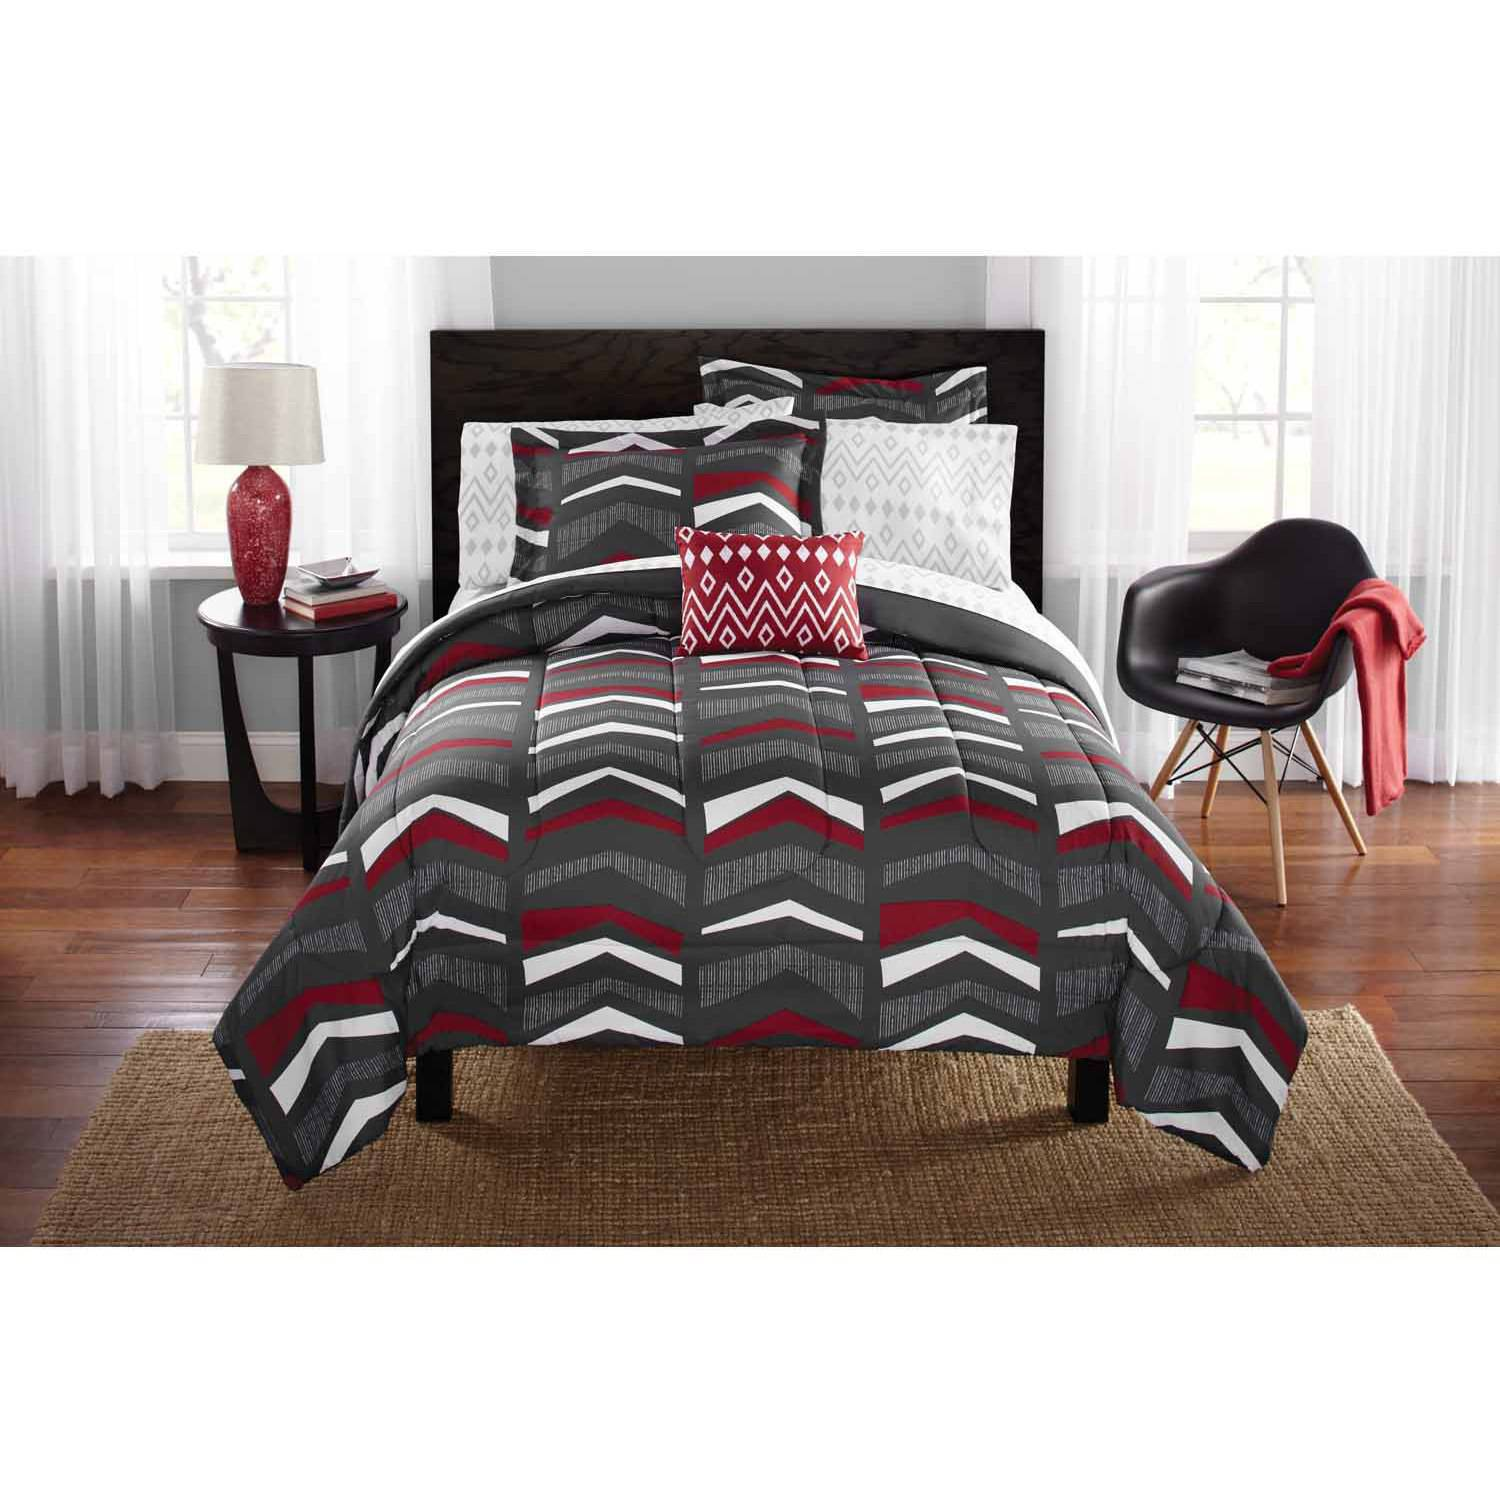 Mainstays Tribal Chevron Bed in a Bag Bedding Set Walmart